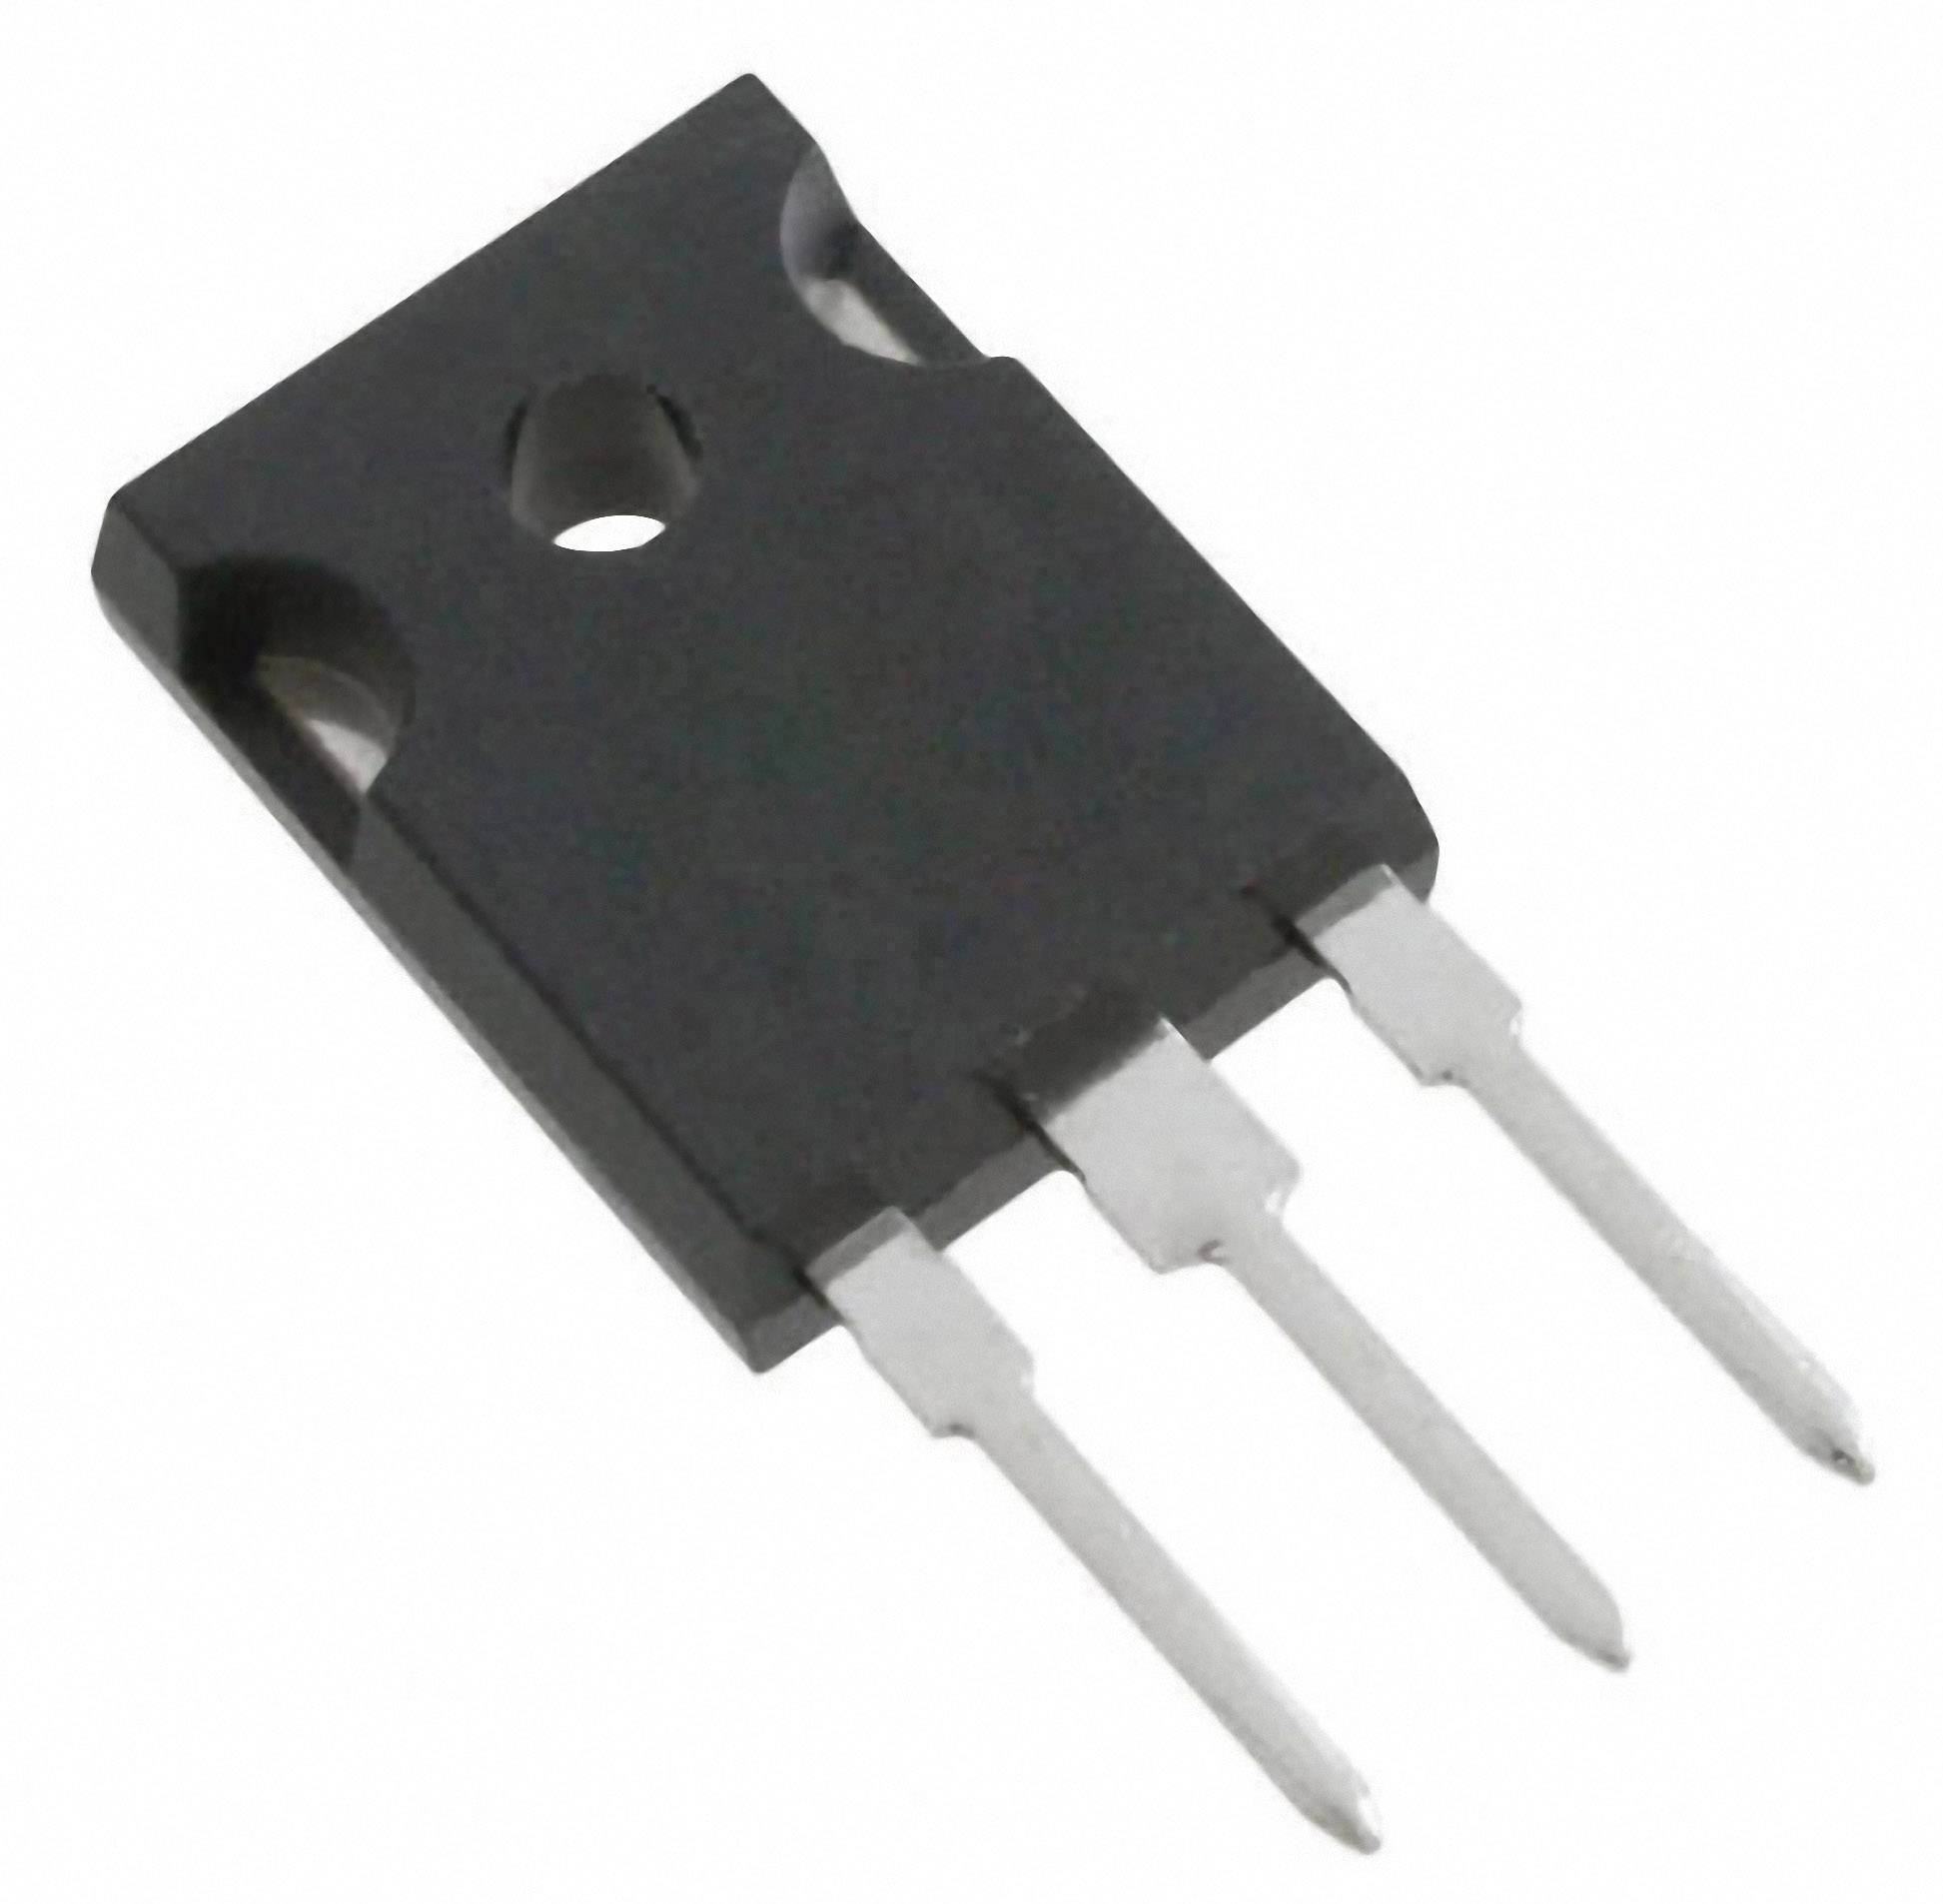 MOSFET Fairchild Semiconductor N kanál N-CH 5 FDH50N50_F133 TO-247-3 FSC